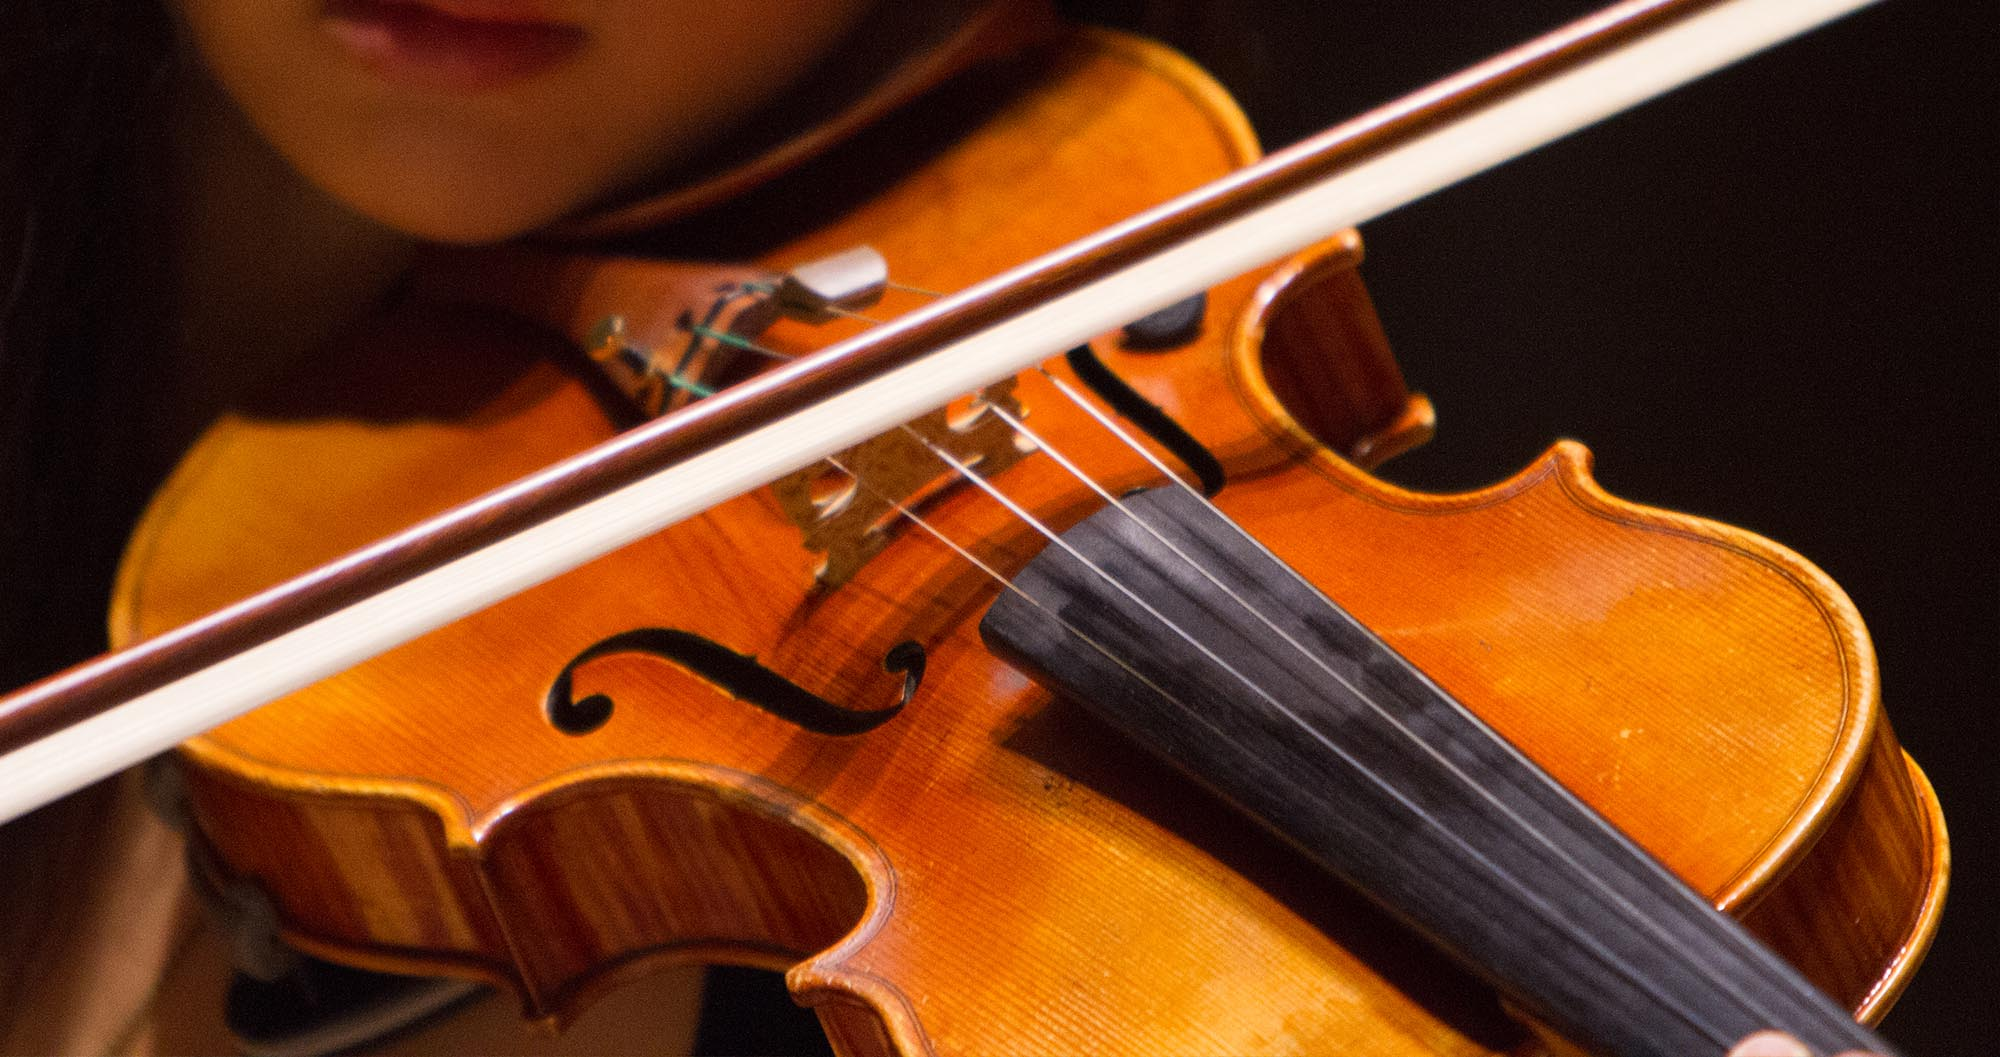 List: What Your Musical Instrument Says About You